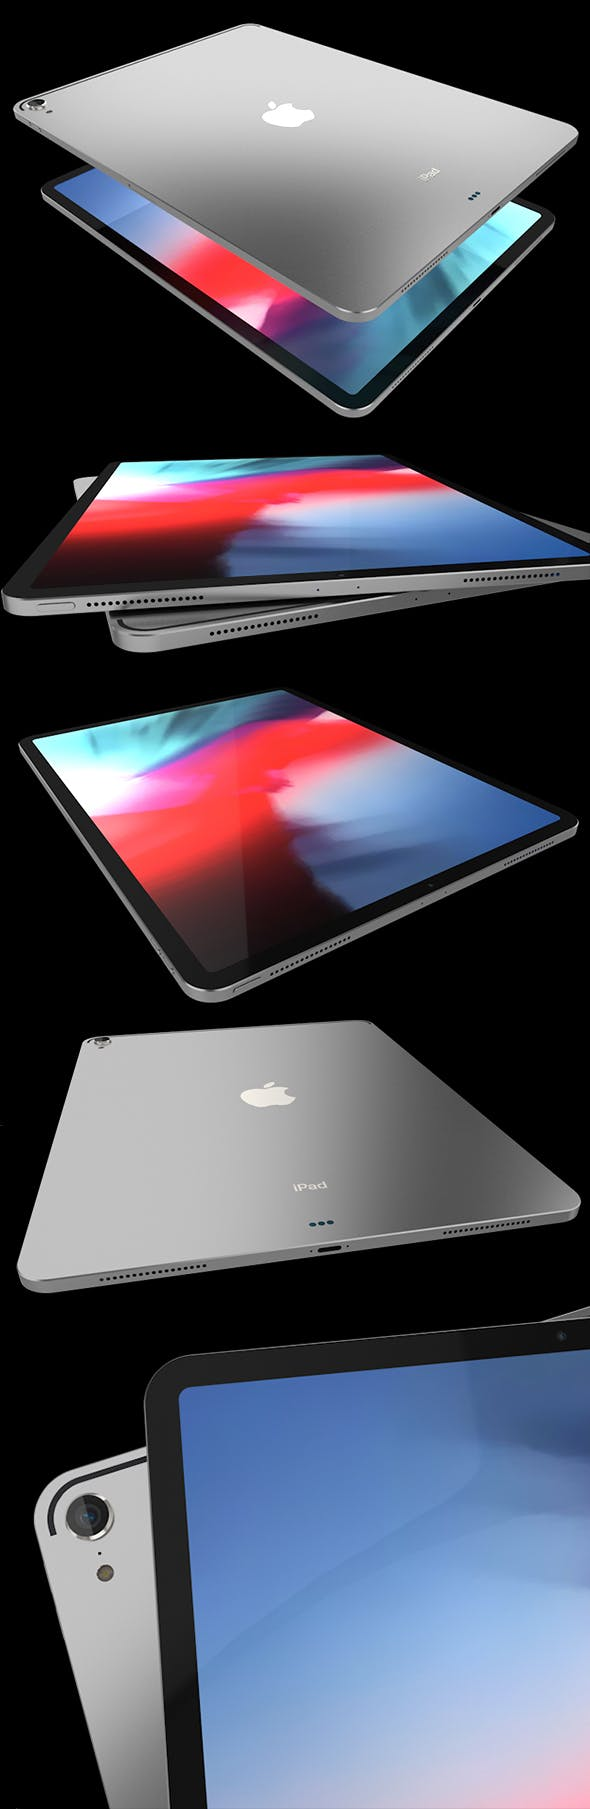 iPad Pro 2019 - 3DOcean Item for Sale